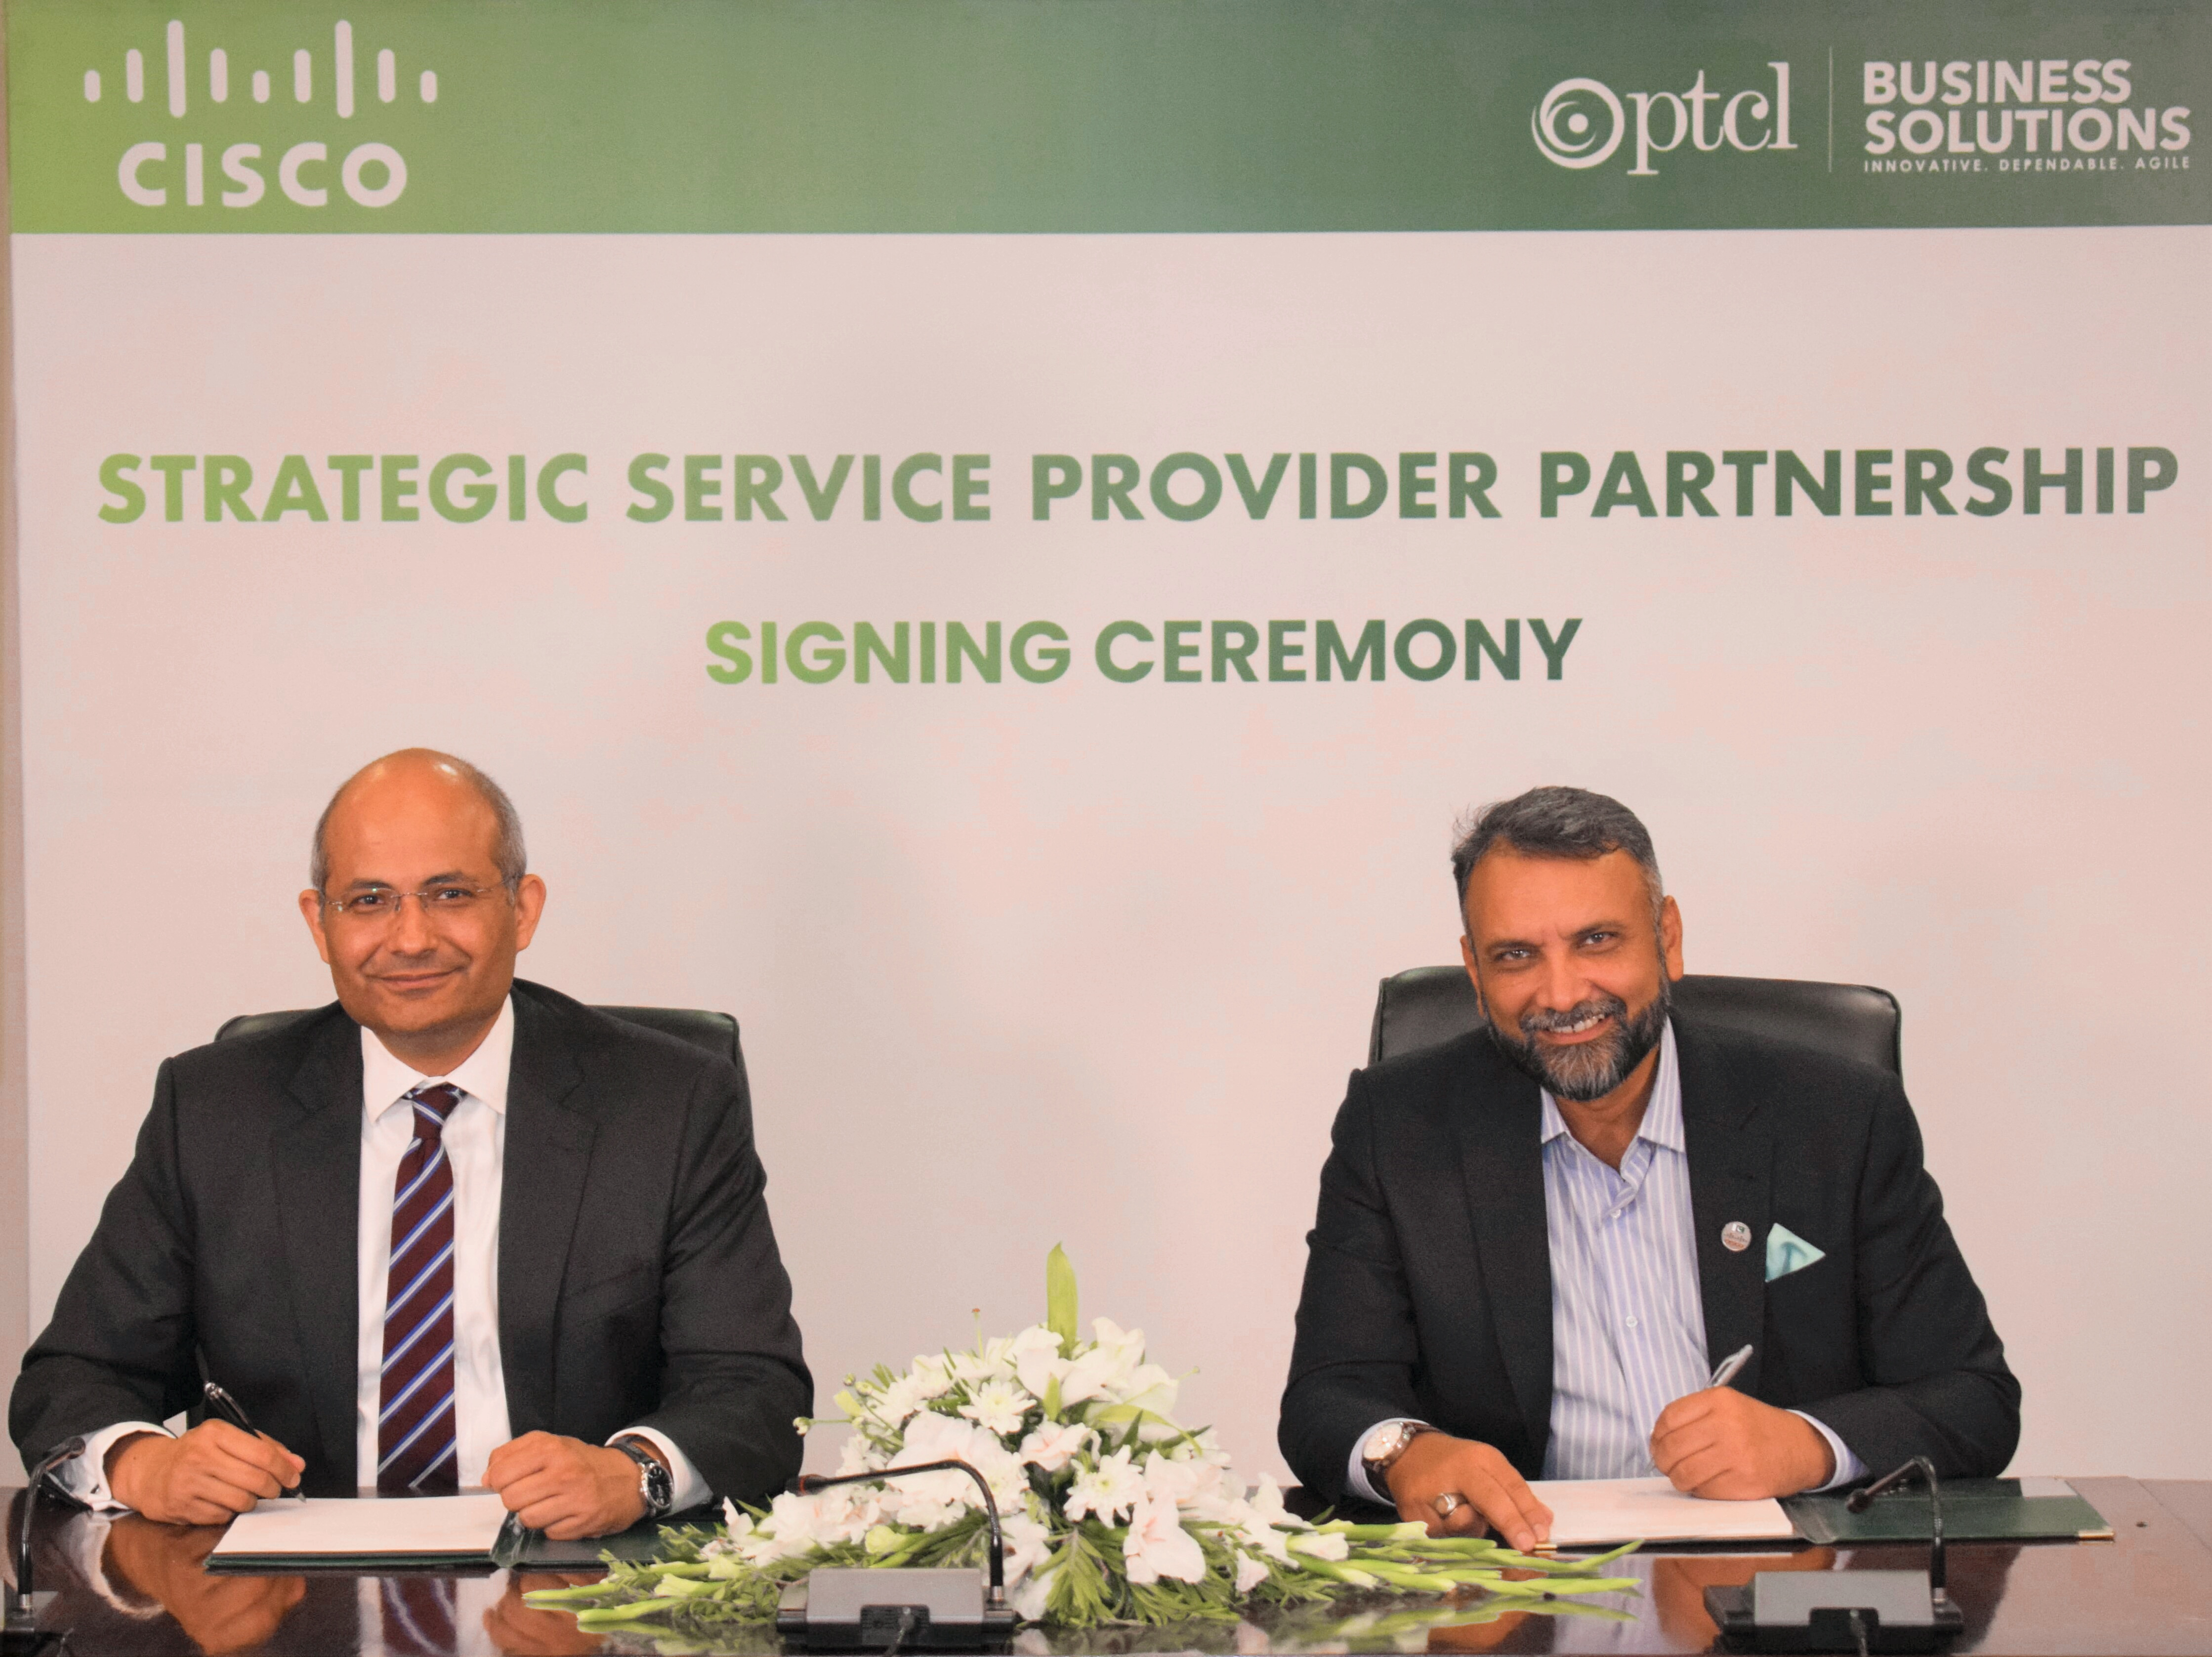 PTCL and Cisco sign strategic service provider partnership agreement